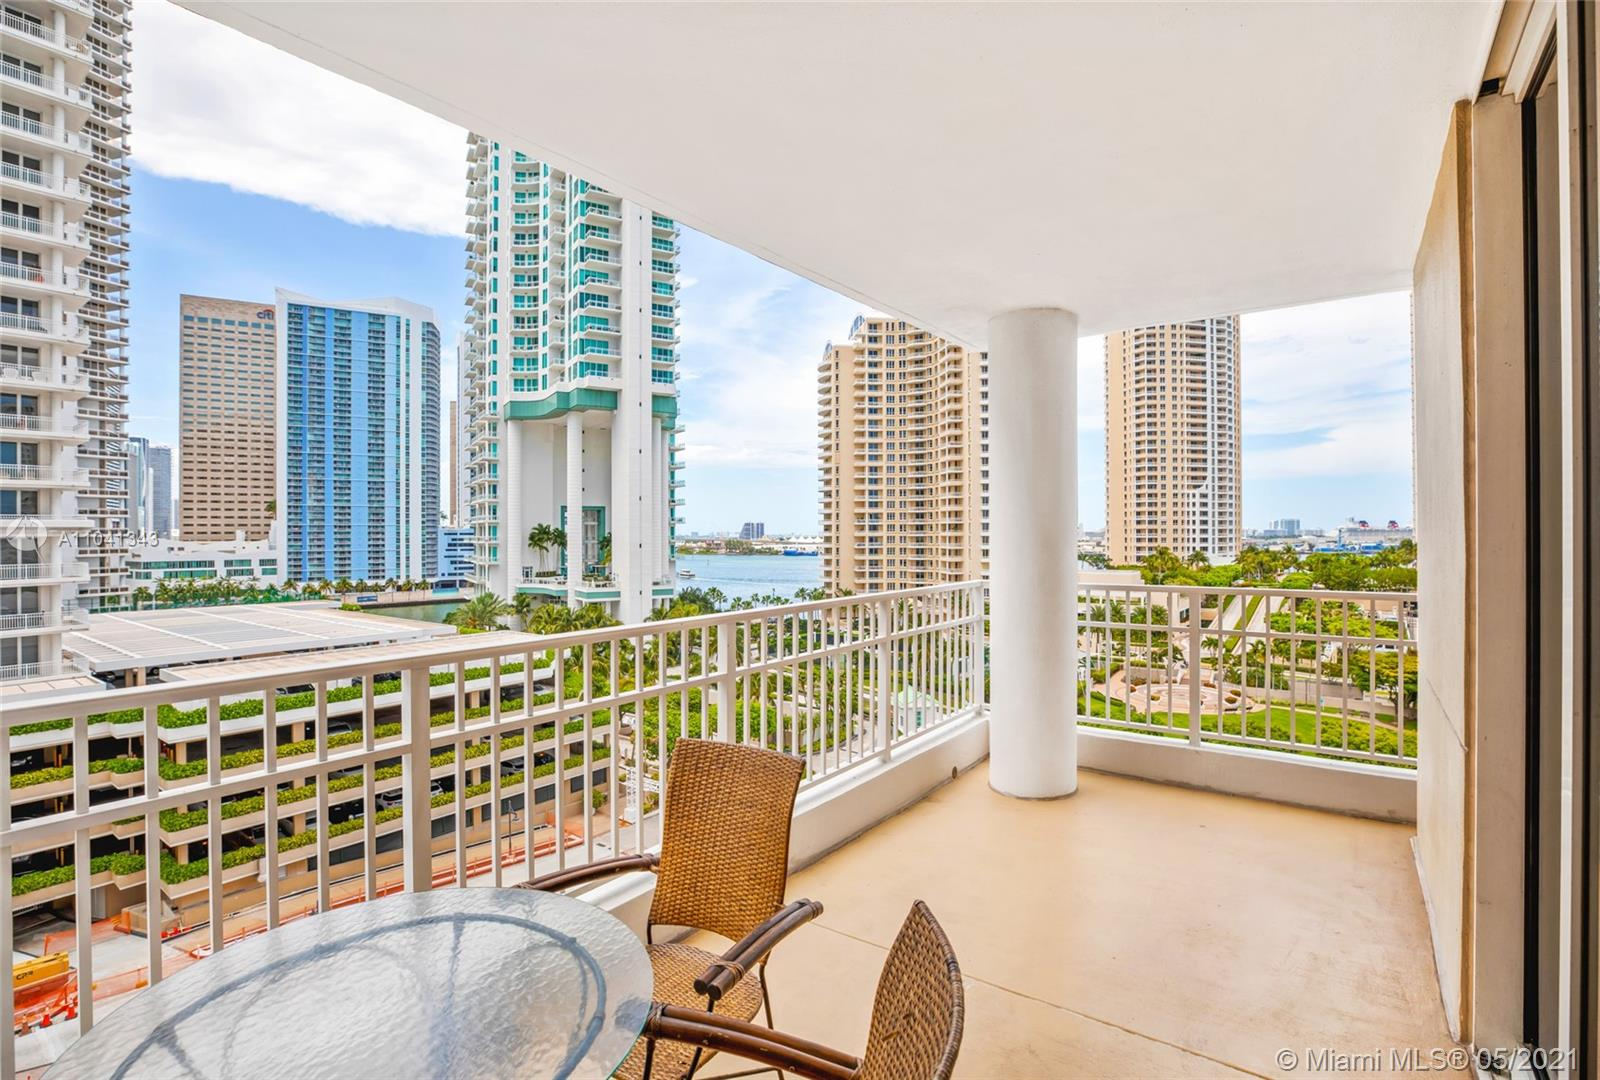 Courvoisier Courts #1009 - 701 Brickell Key Blvd #1009, Miami, FL 33131